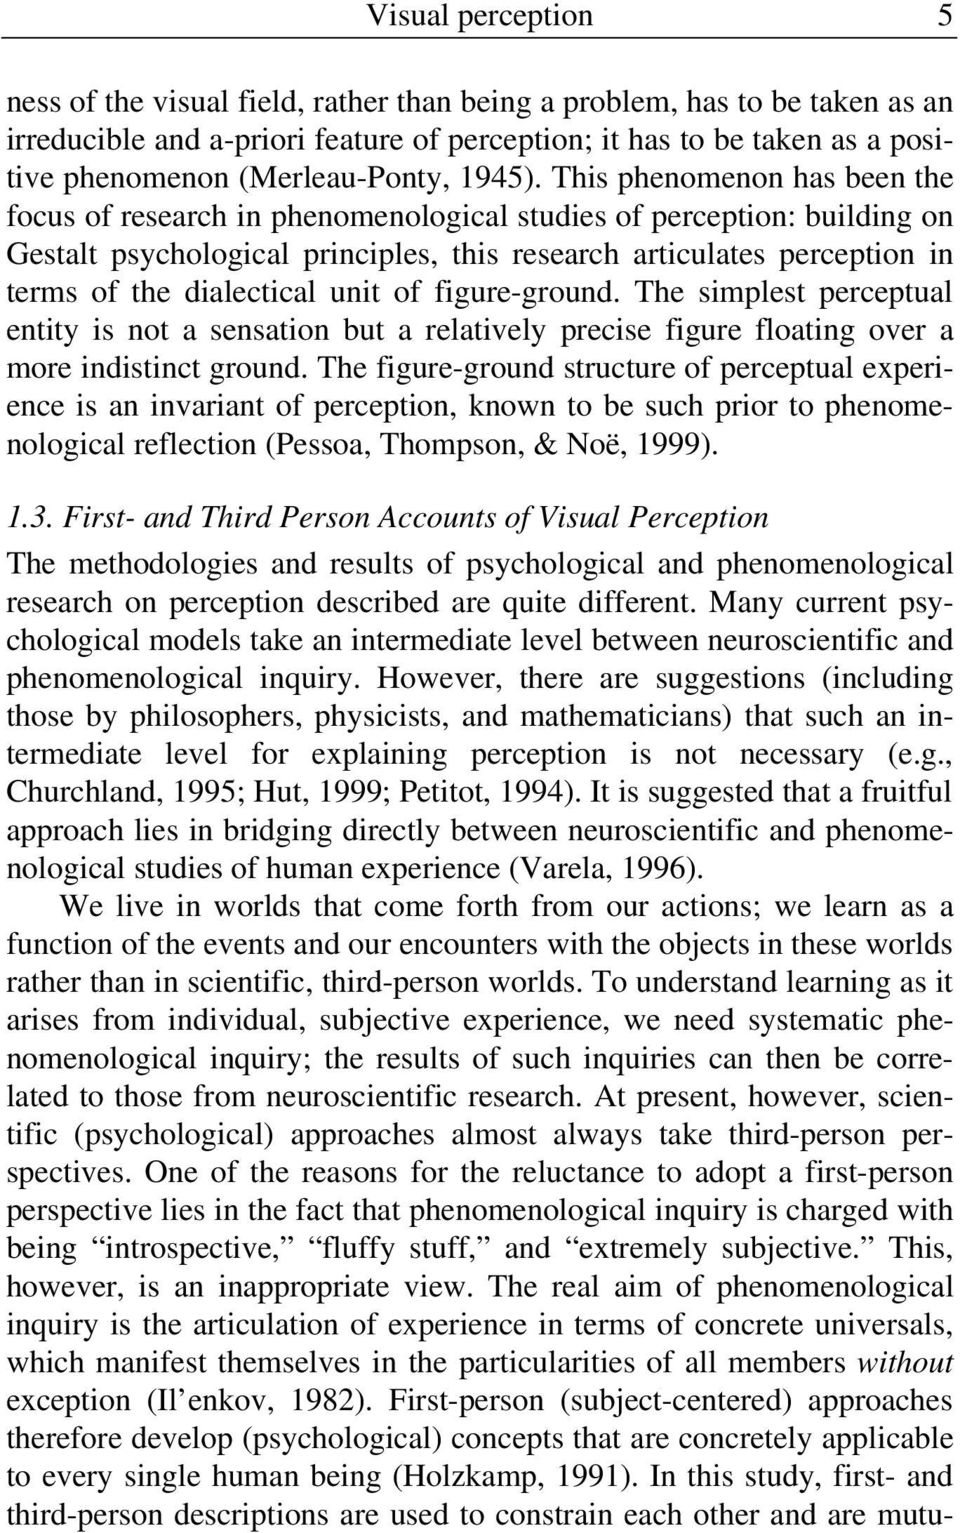 This phenomenon has been the focus of research in phenomenological studies of perception: building on Gestalt psychological principles, this research articulates perception in terms of the